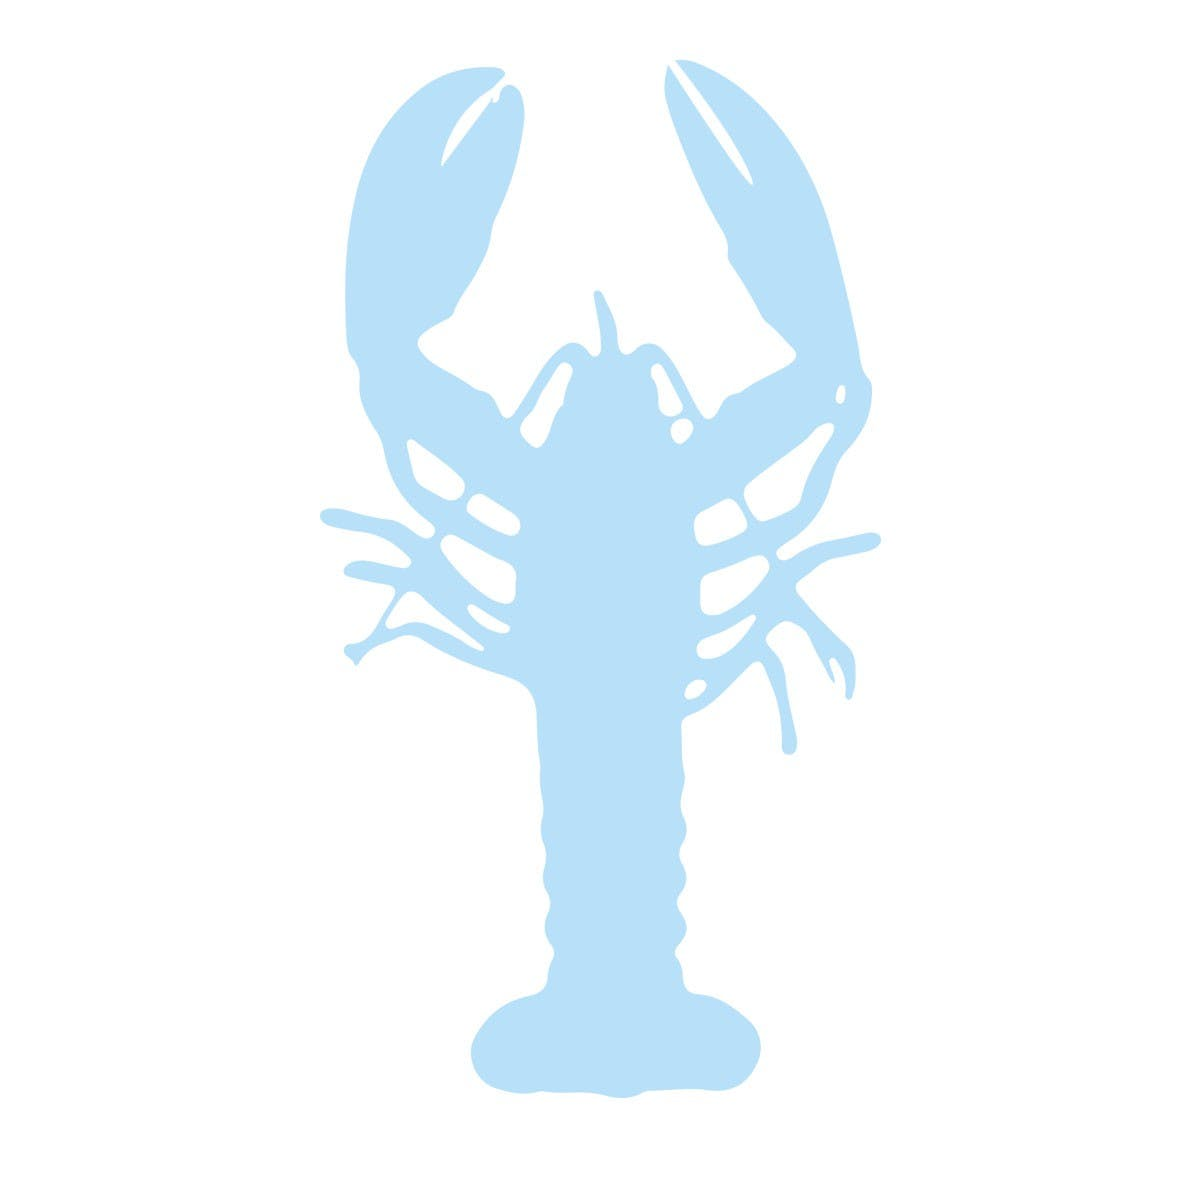 Lobster Image - 2